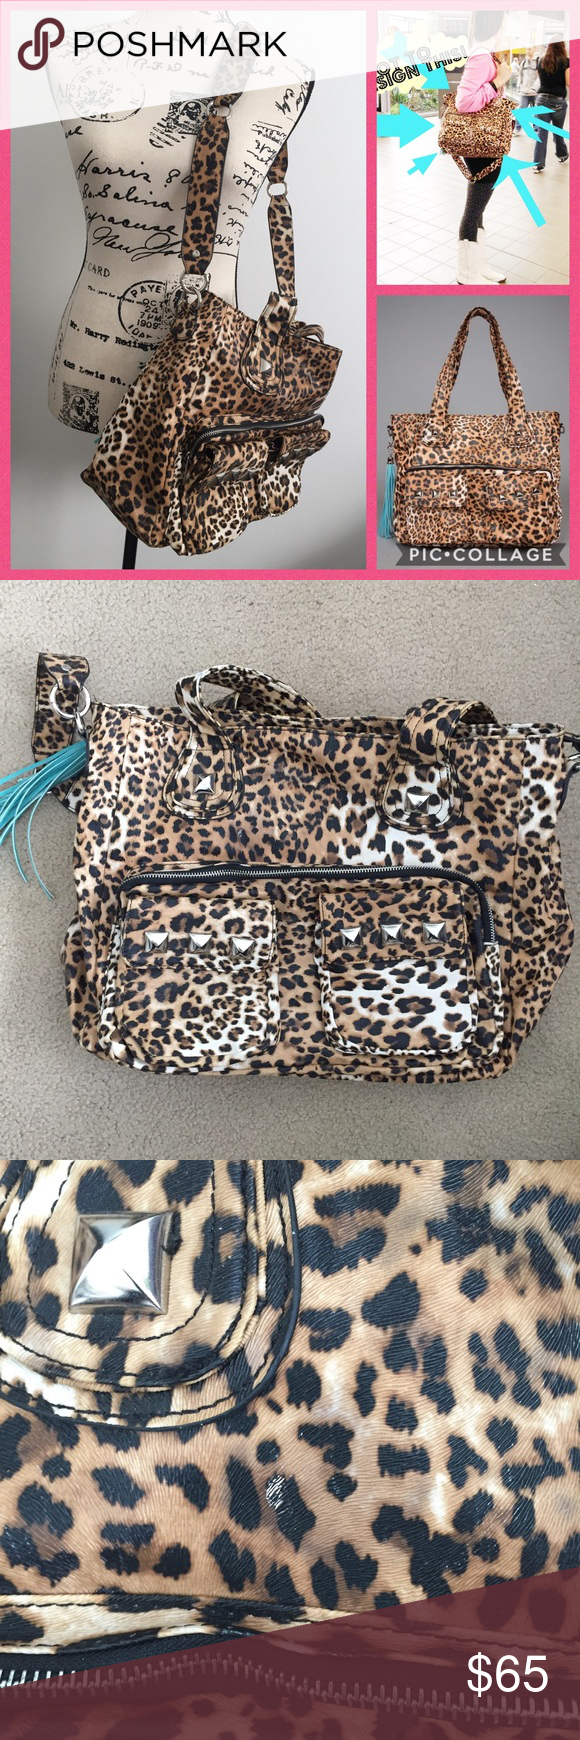 Kandee Johnson Imoshion Limited Ed Leopard Bag The Beauty Guru Designed Herself This Is A 2017 1st Generation Before They